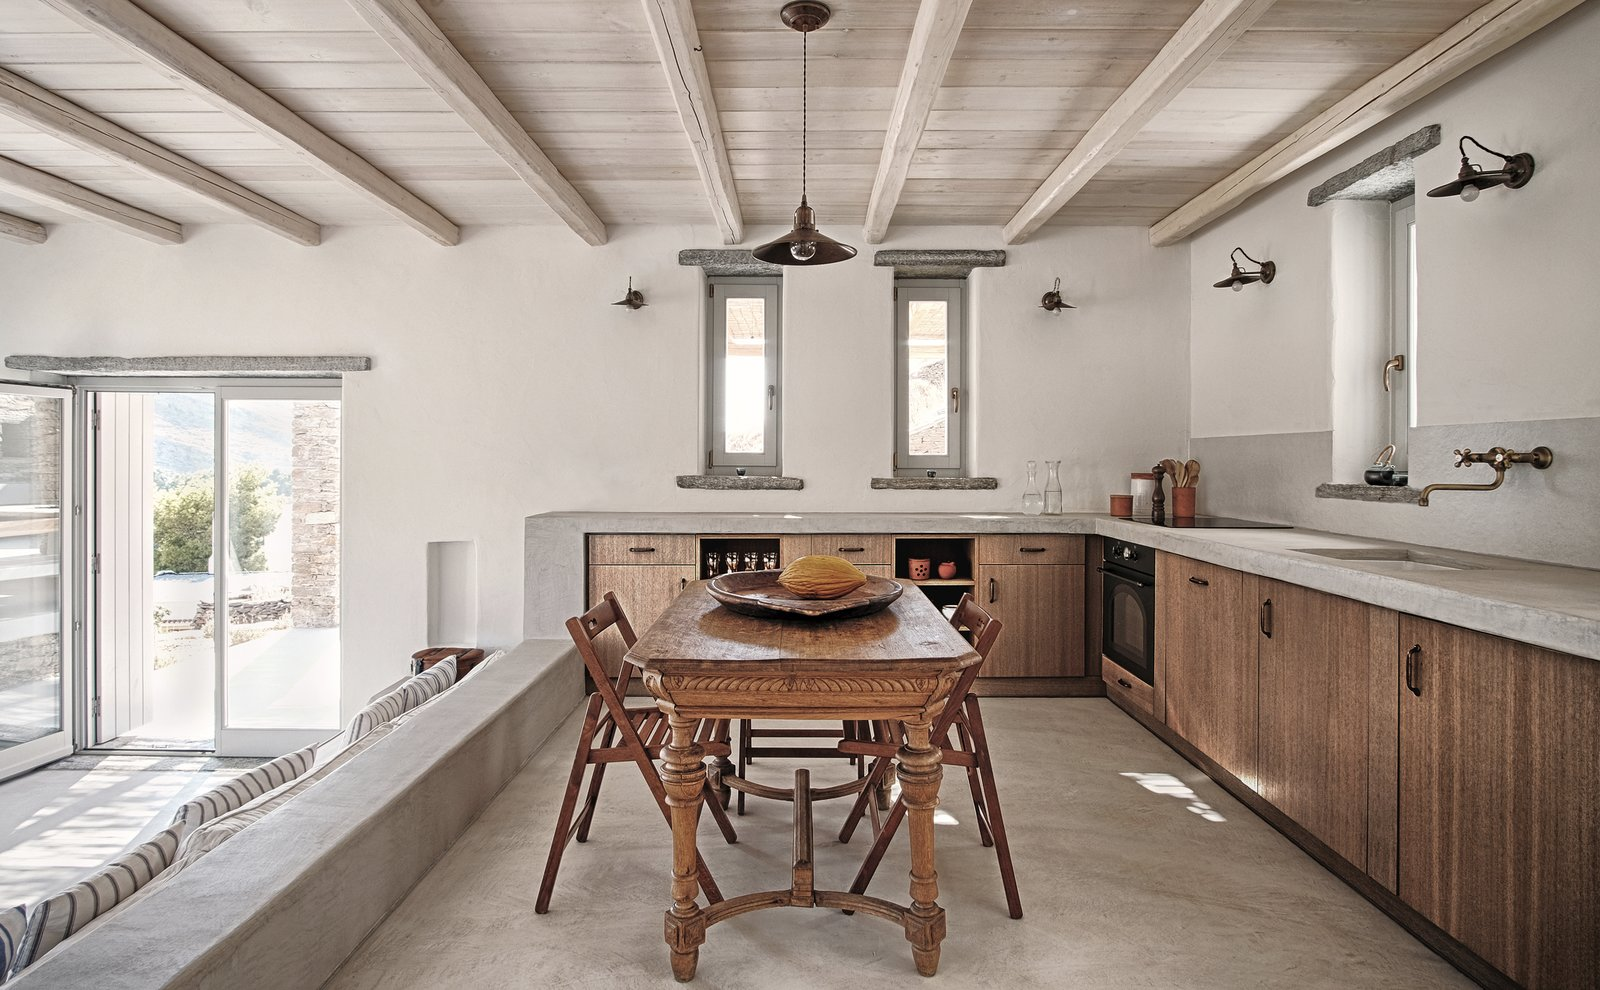 Kitchen area Tagged: Dining Room, Chair, Table, Pendant Lighting, and Concrete Floor.  ROCKSPLIT house by COMETA ARCHITECTS